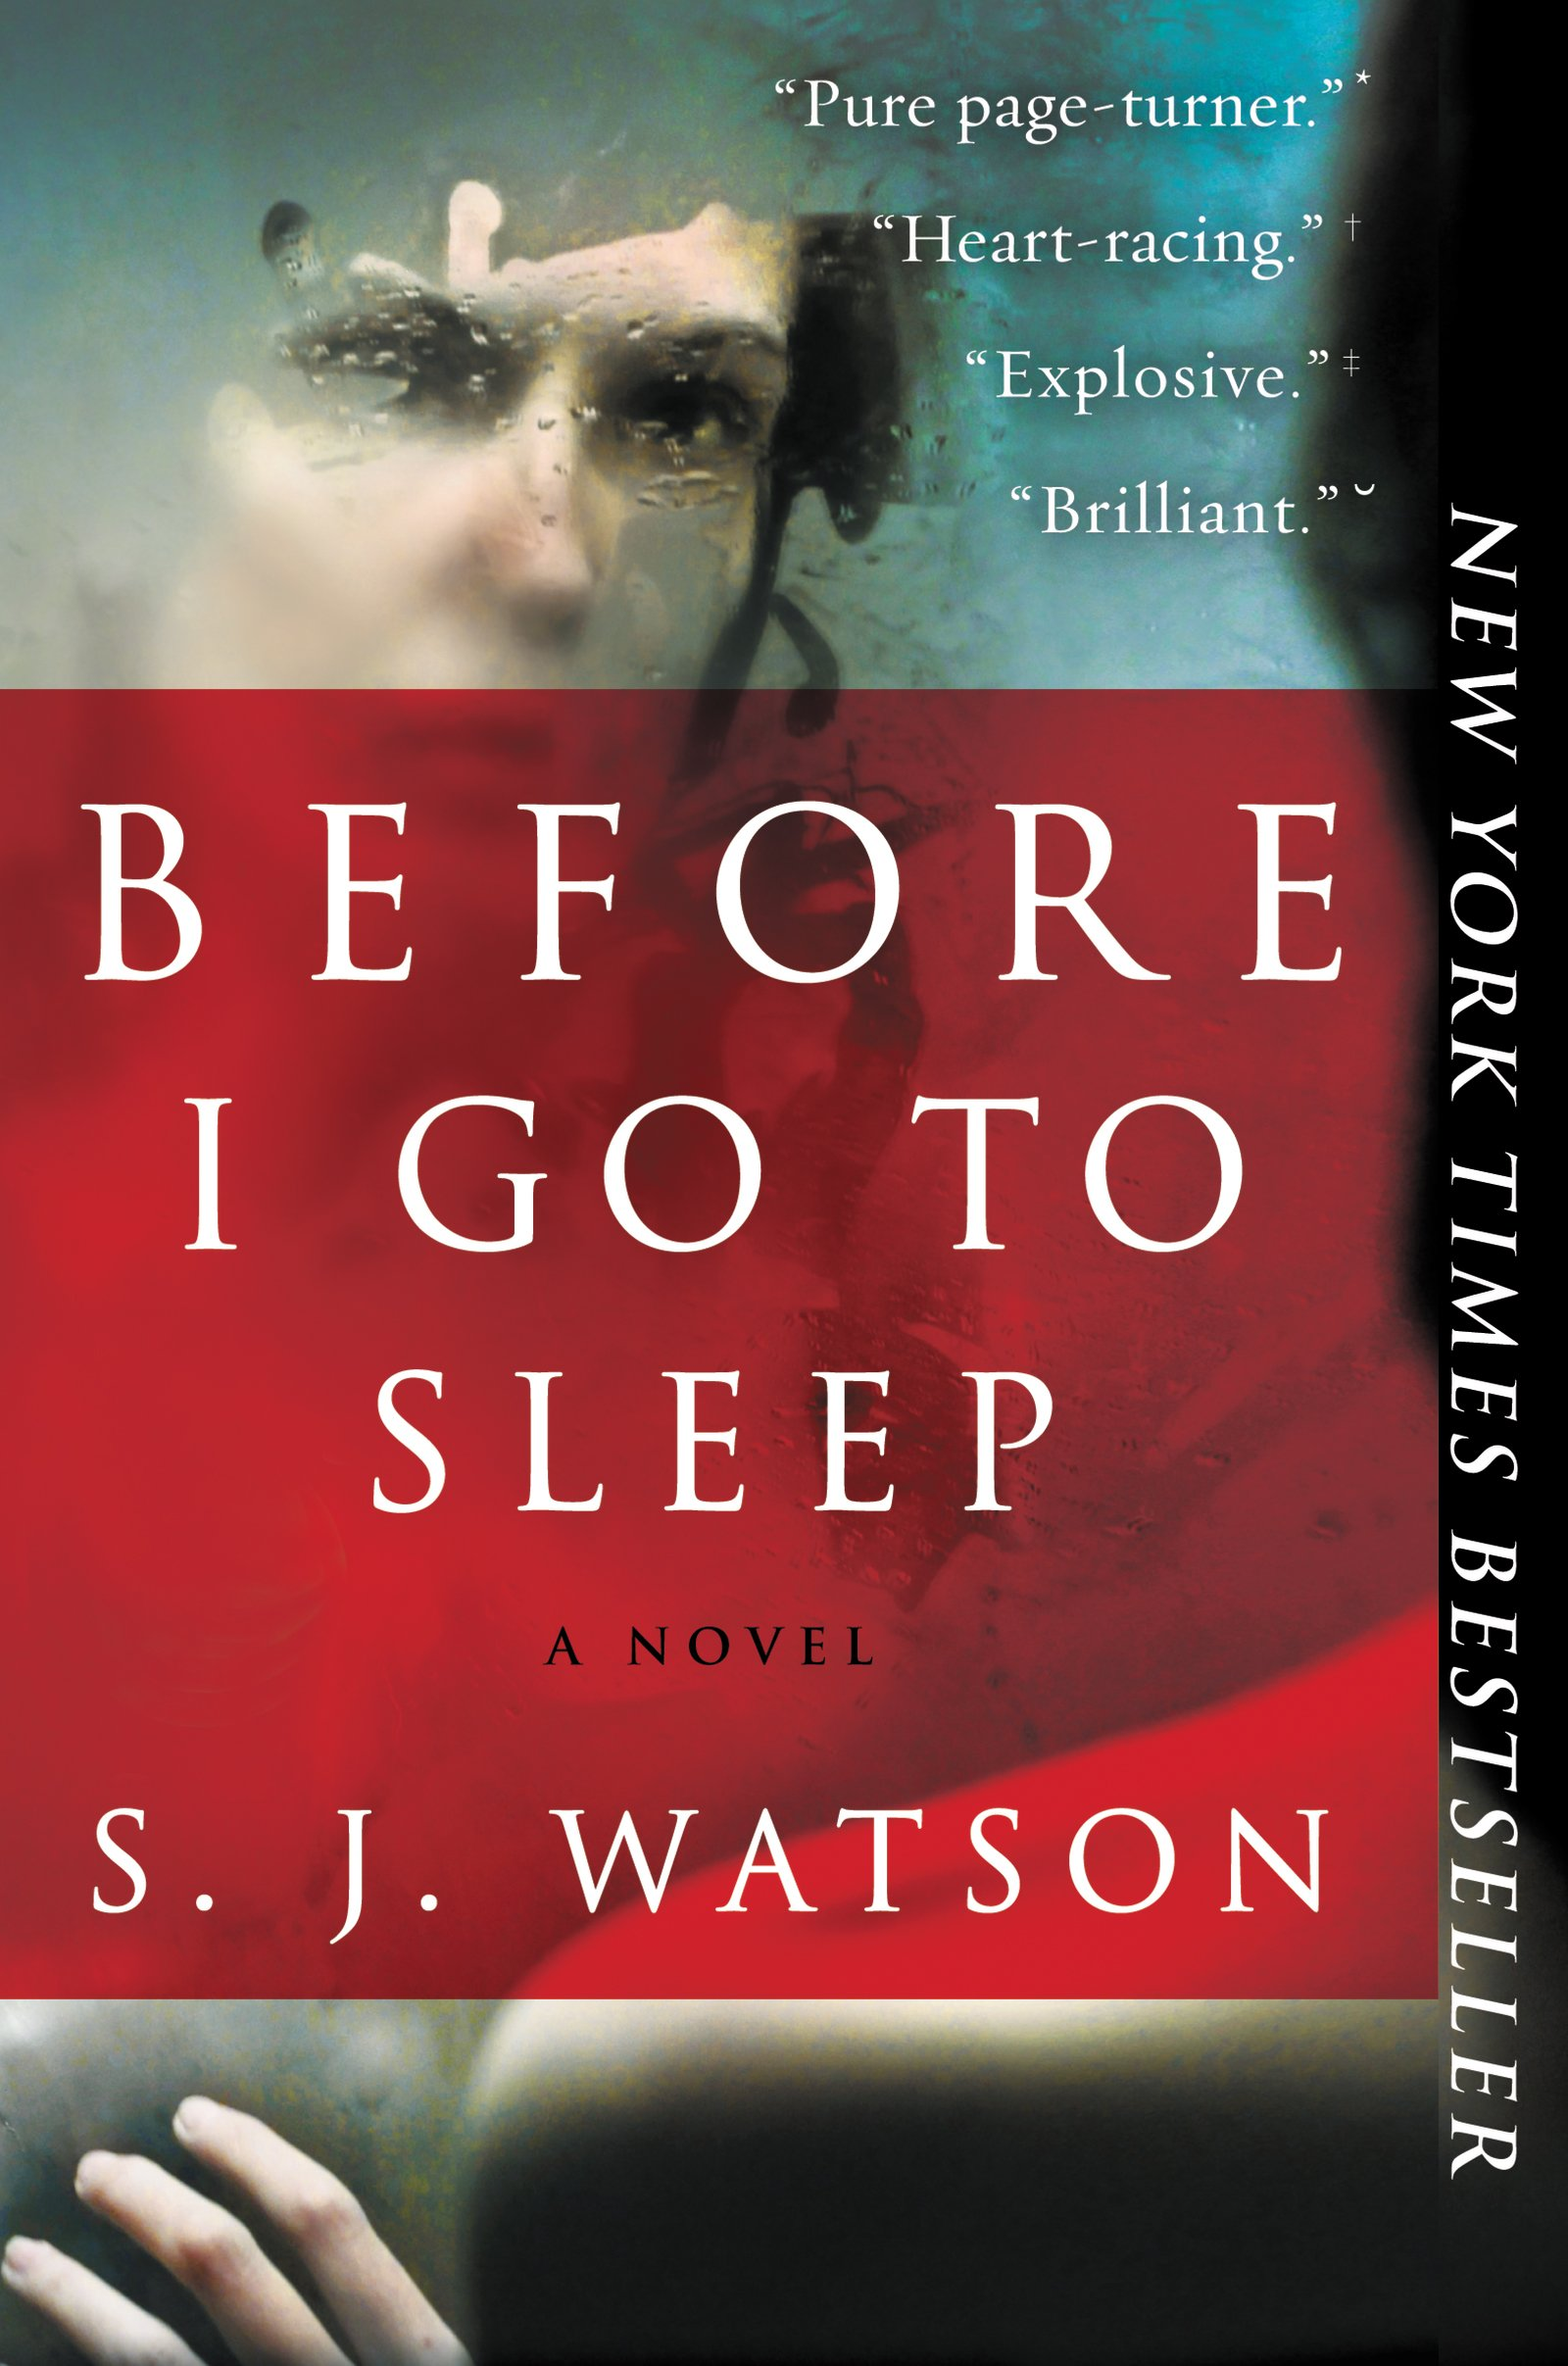 Buy Before I Go To Sleep: A Novel Book Online At Low Prices In India   Before I Go To Sleep: A Novel Reviews & Ratings  Amazon